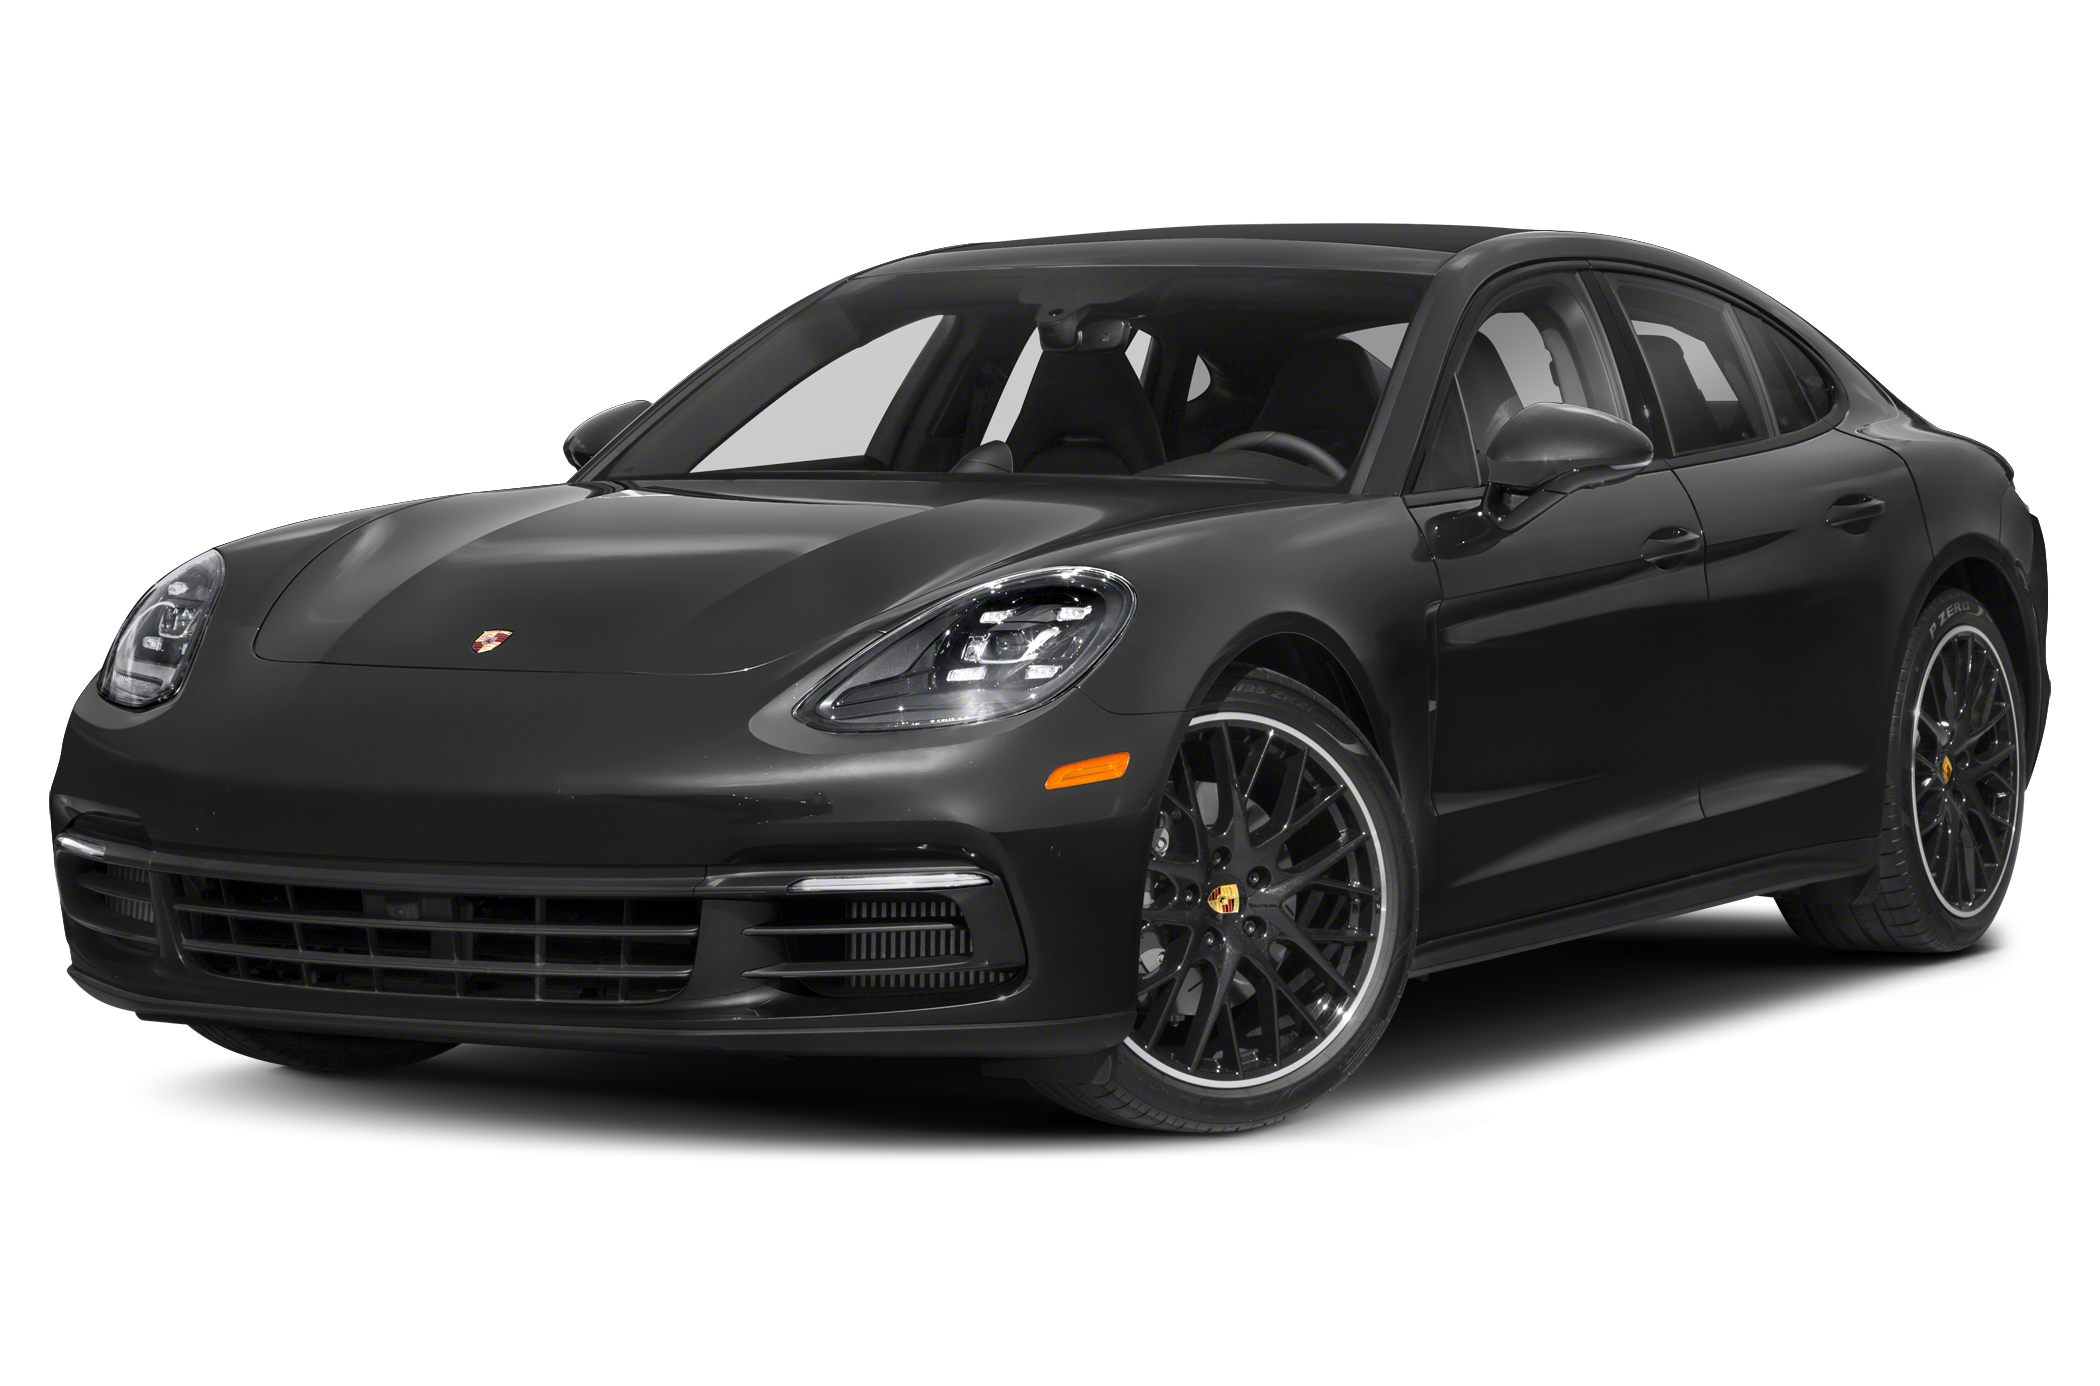 Porsche to develop new line of engines for next Panamera